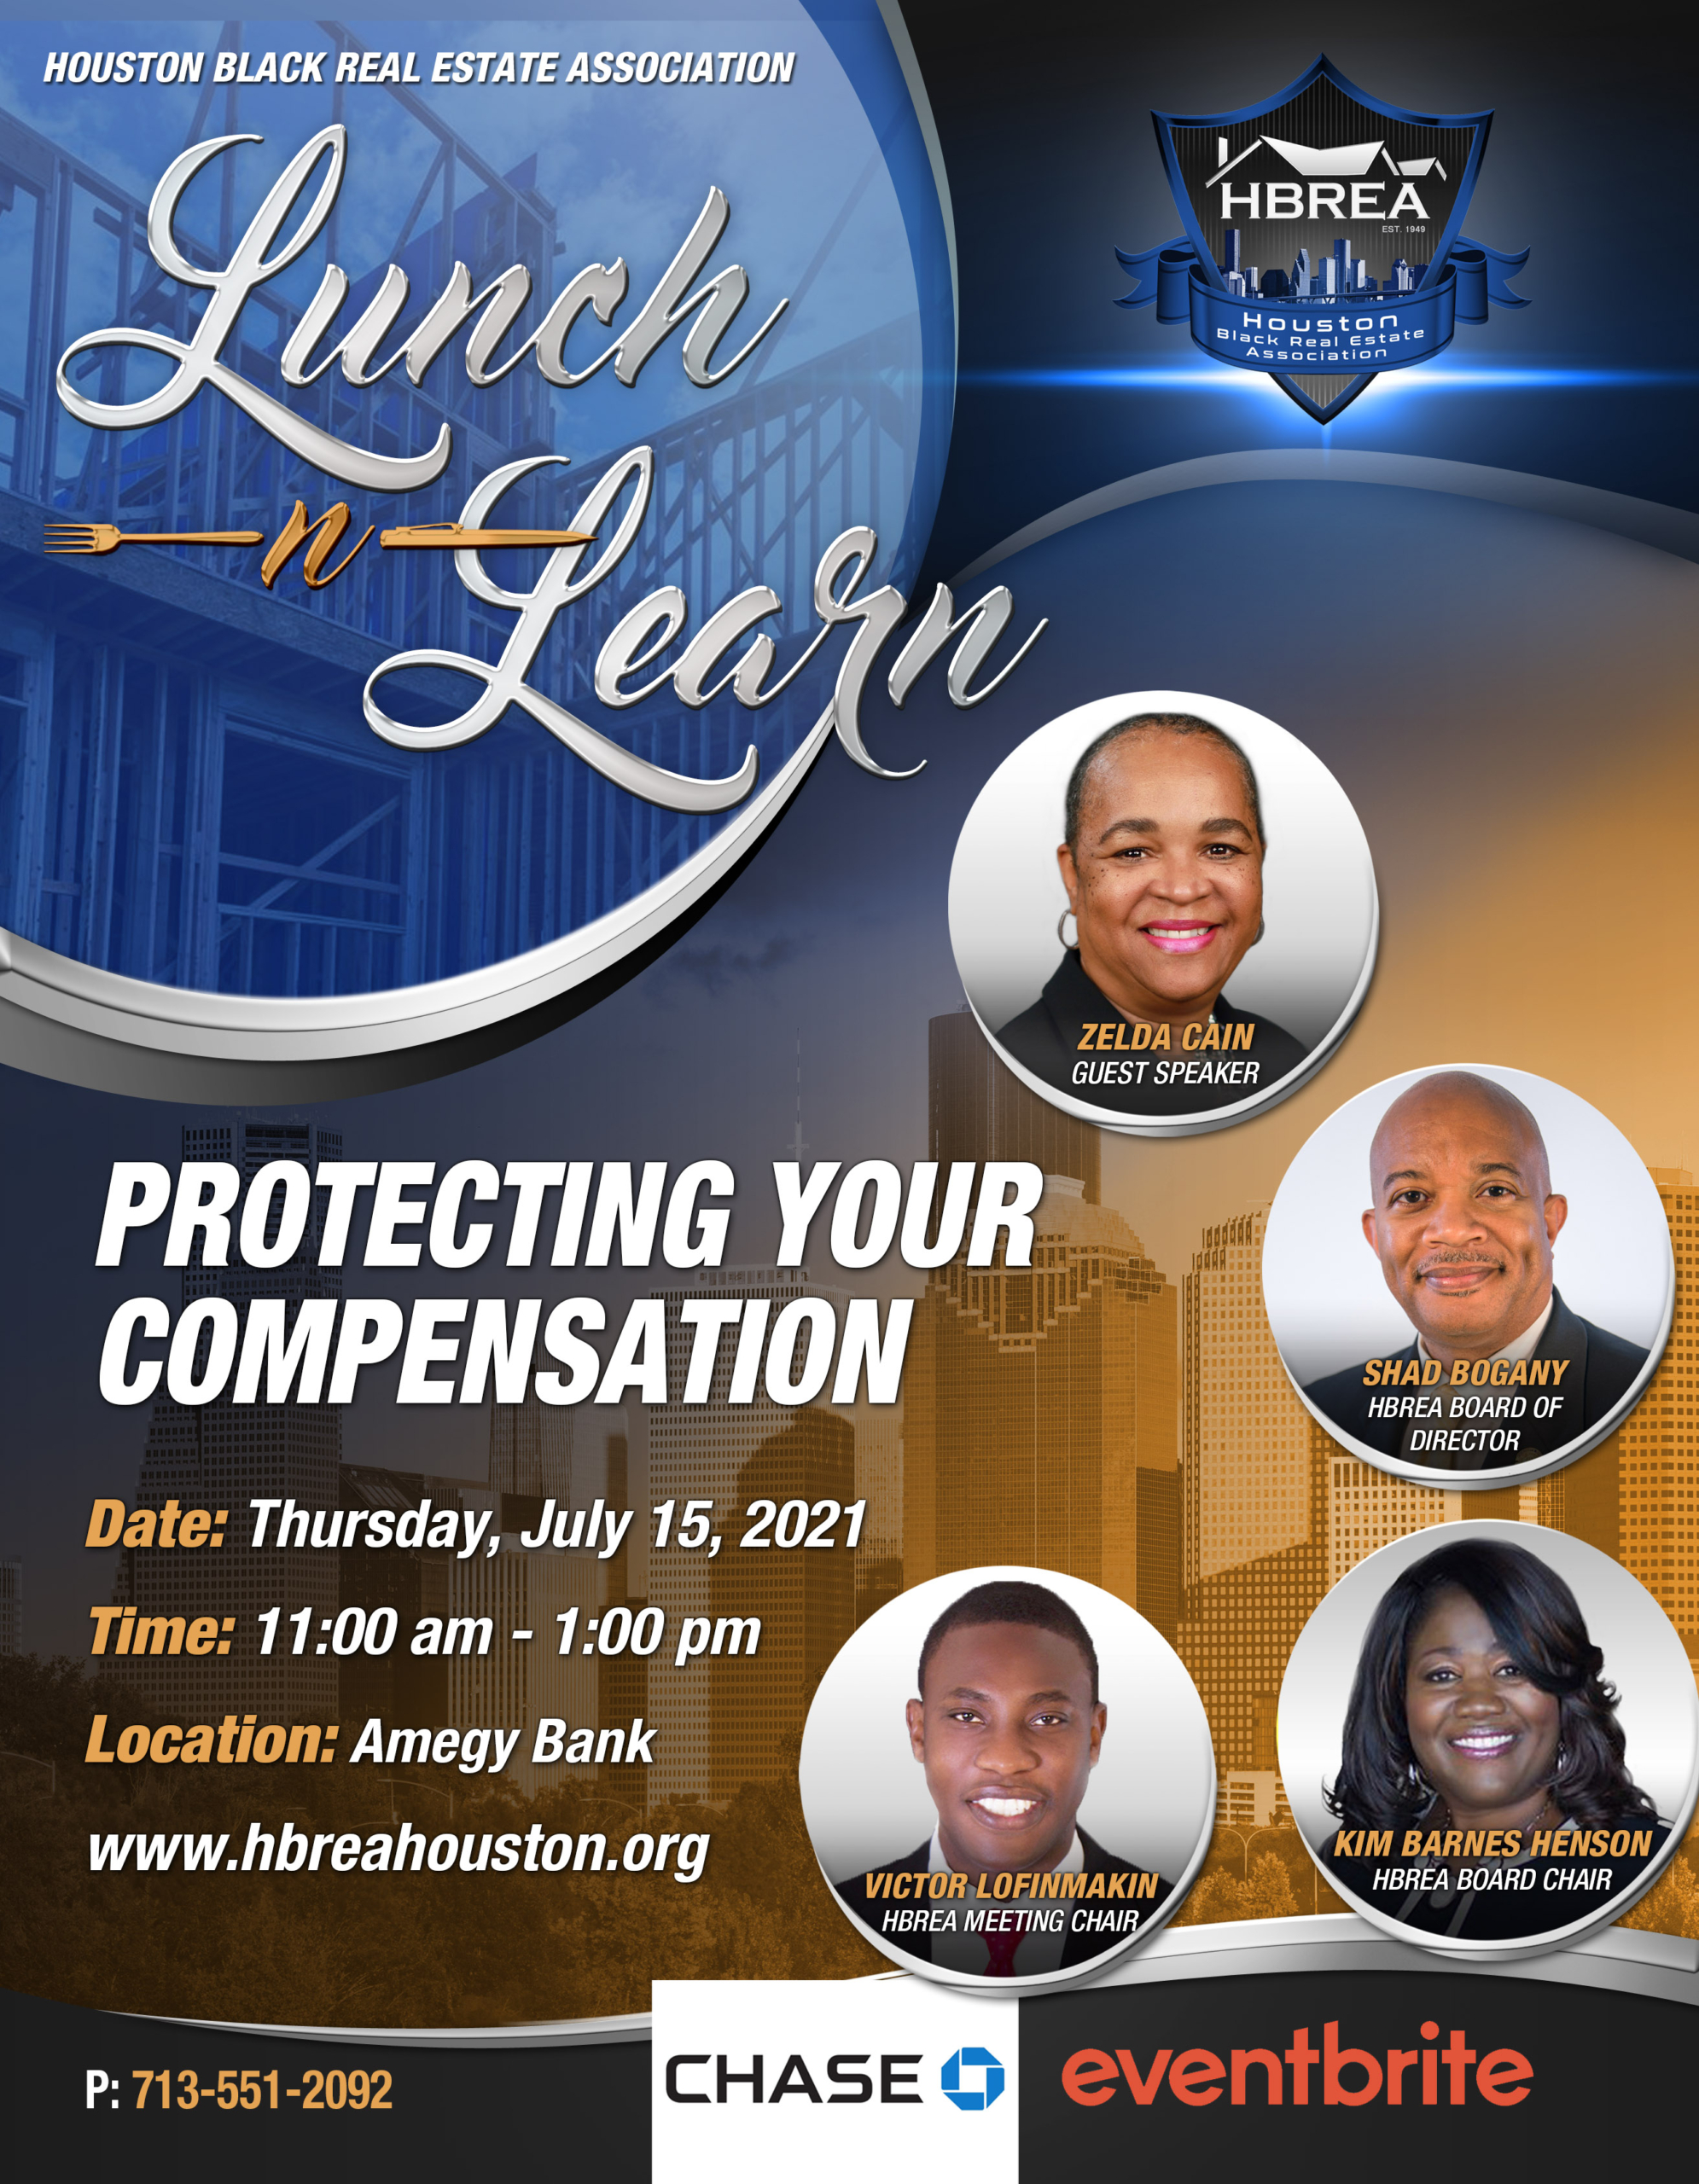 HBREA - Amegy Bank - Lunch-n-Learn - Protecting Your Compensation - Zelda Cain, Shad Bogany, Kim Barnes-Henson, Victor Lofinmakin